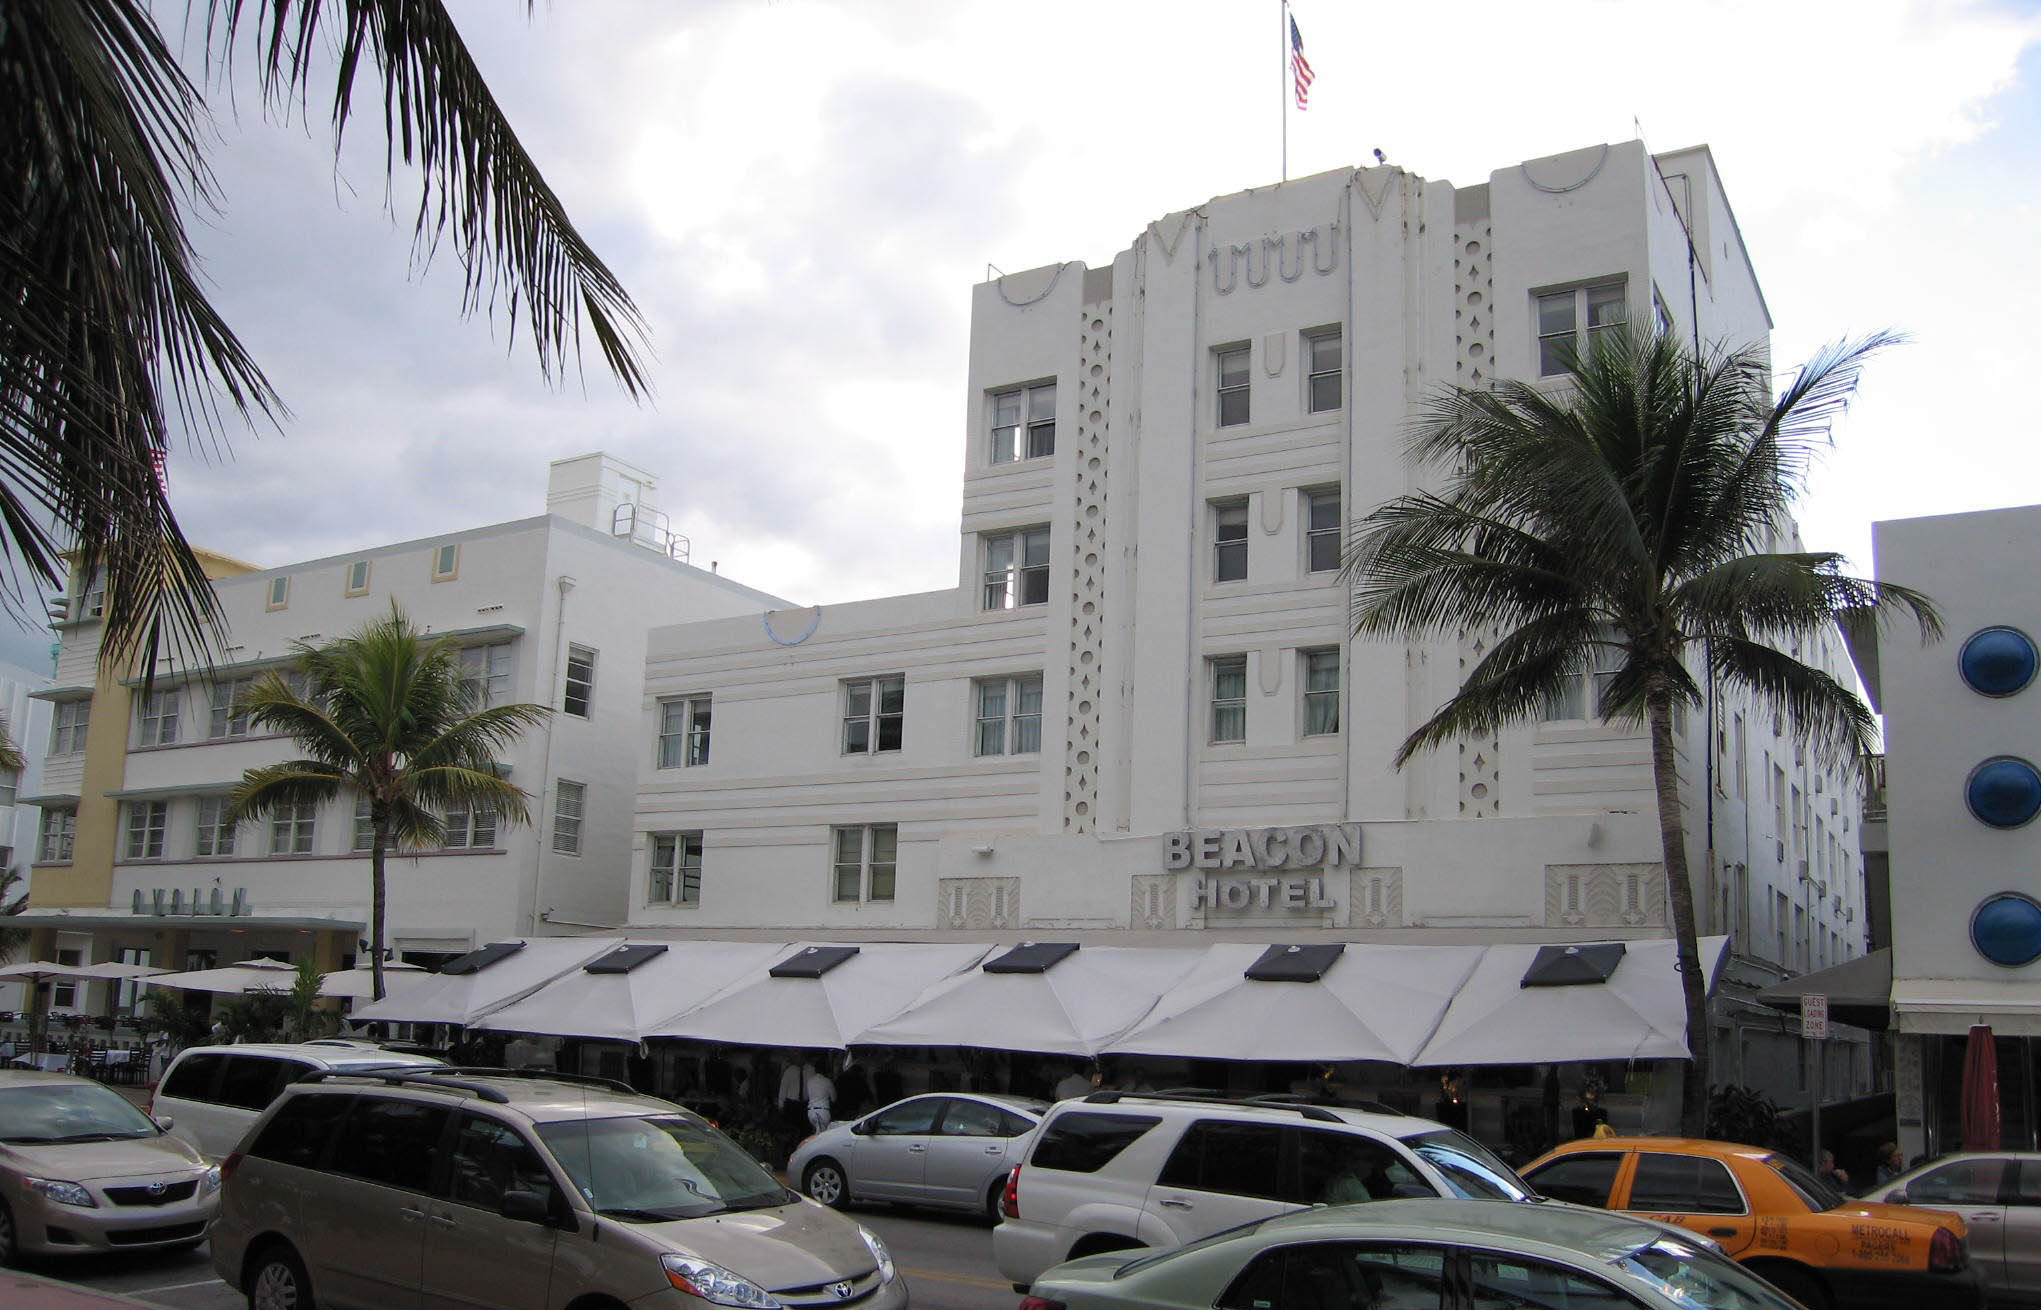 art-deco-miami-beach-23.jpg